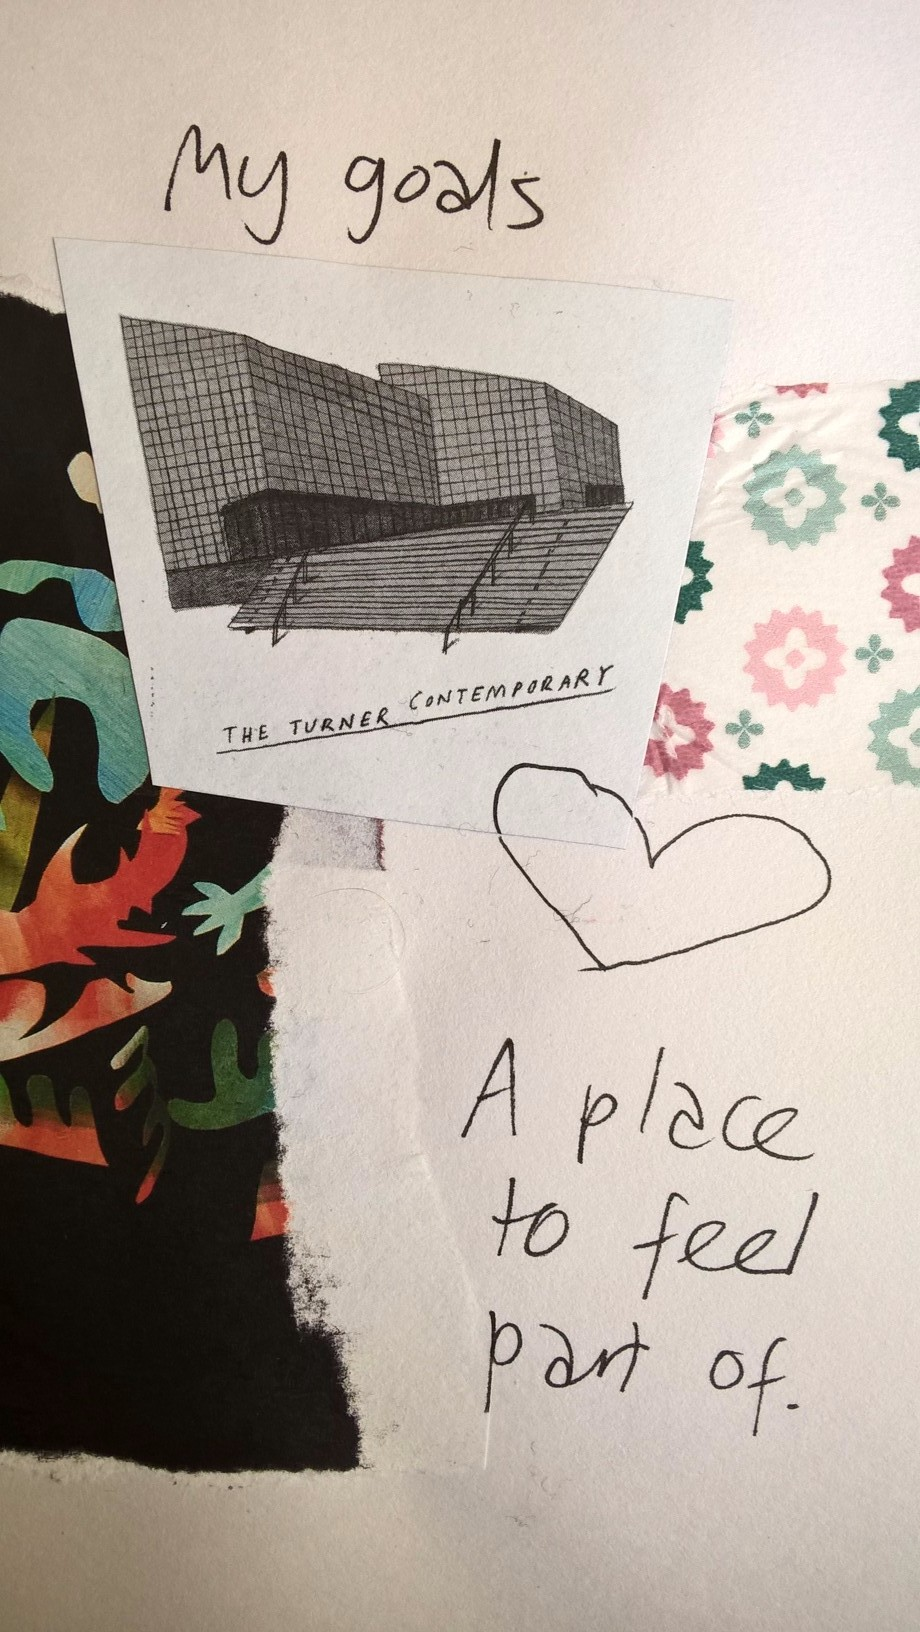 """Collage showing an illustration of Turner Contemporary Margate, a heart and text reading """"My goals"""" and """"A place to feel part of"""""""